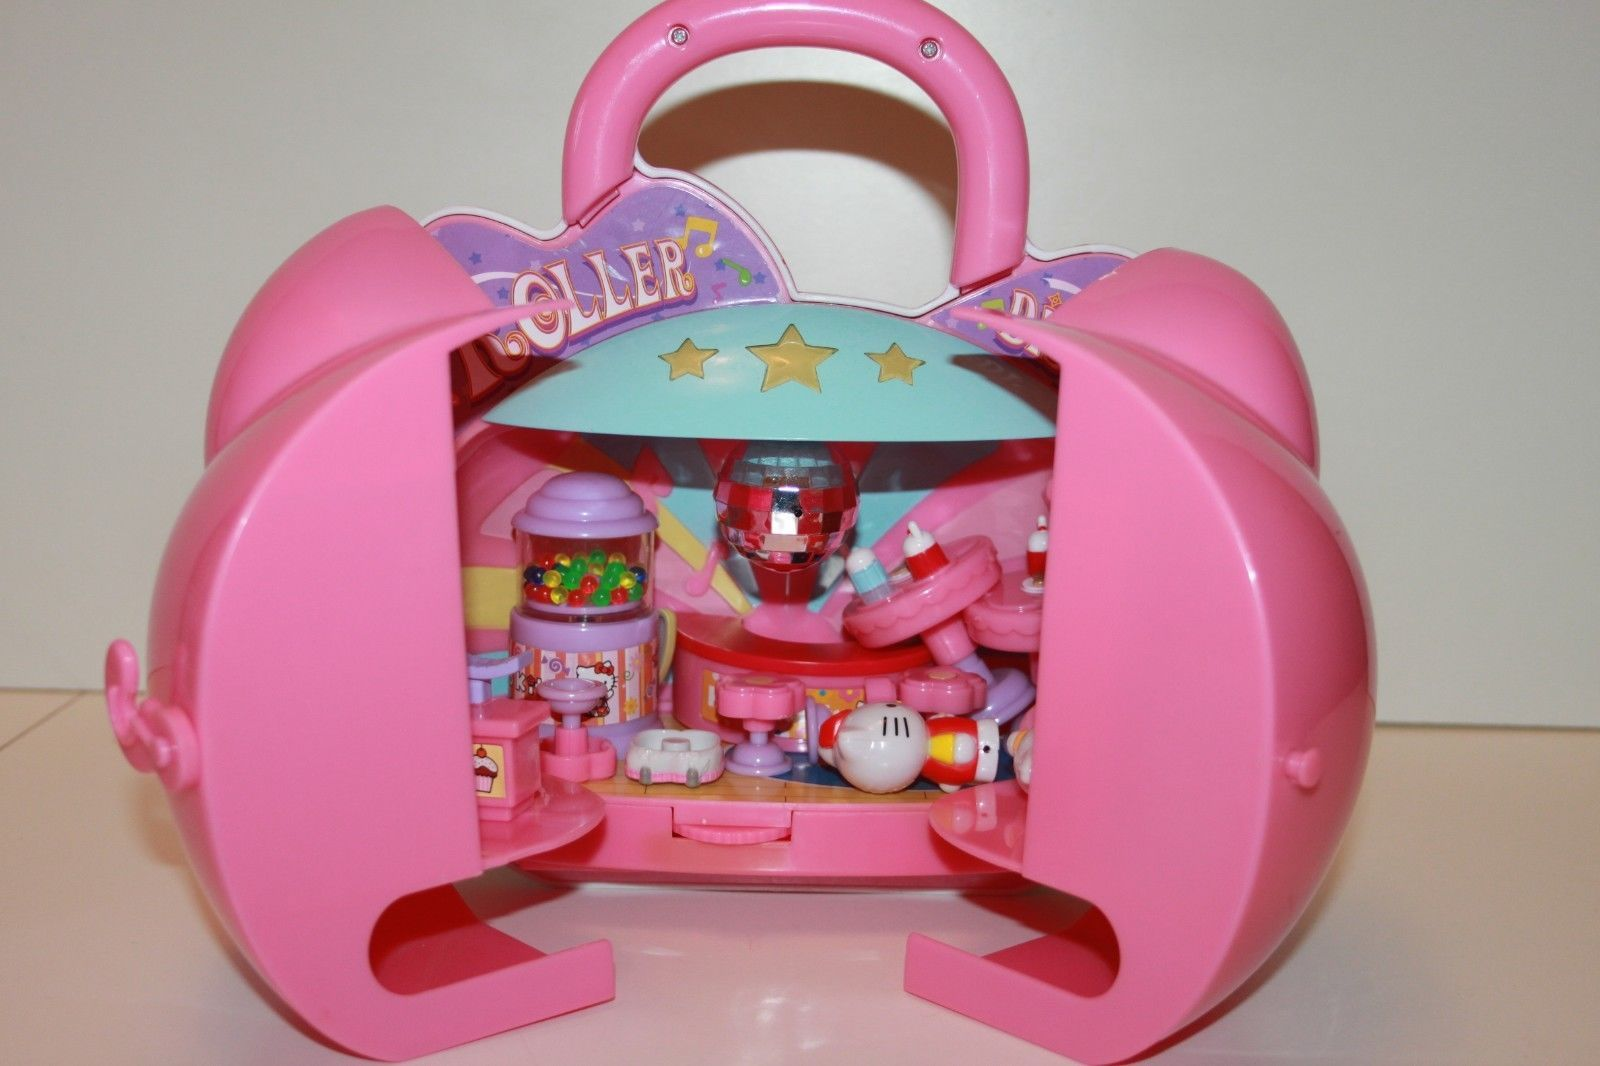 Blue box hello kitty roller disco carry along play set and